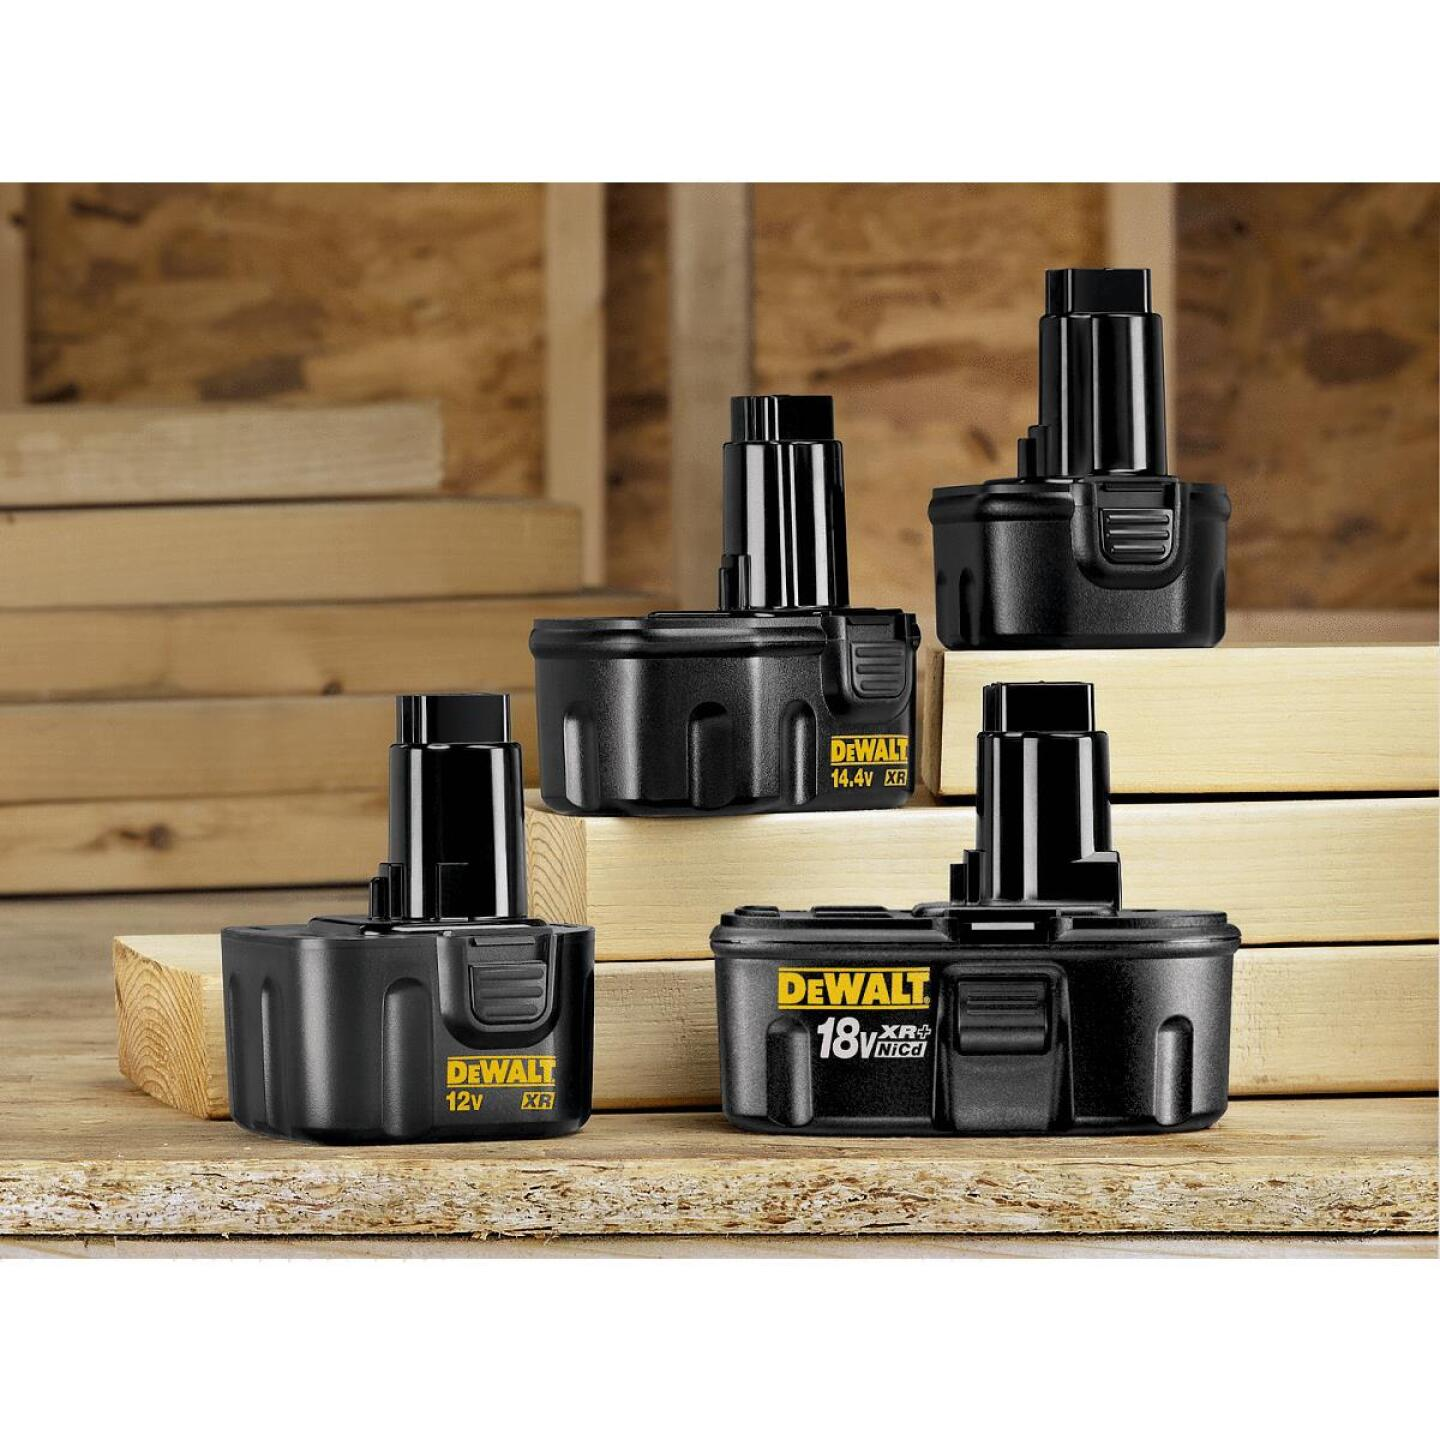 DeWalt 9.6 Volt XR Nickel-Cadmium 1.7 Ah Tool Battery Image 2